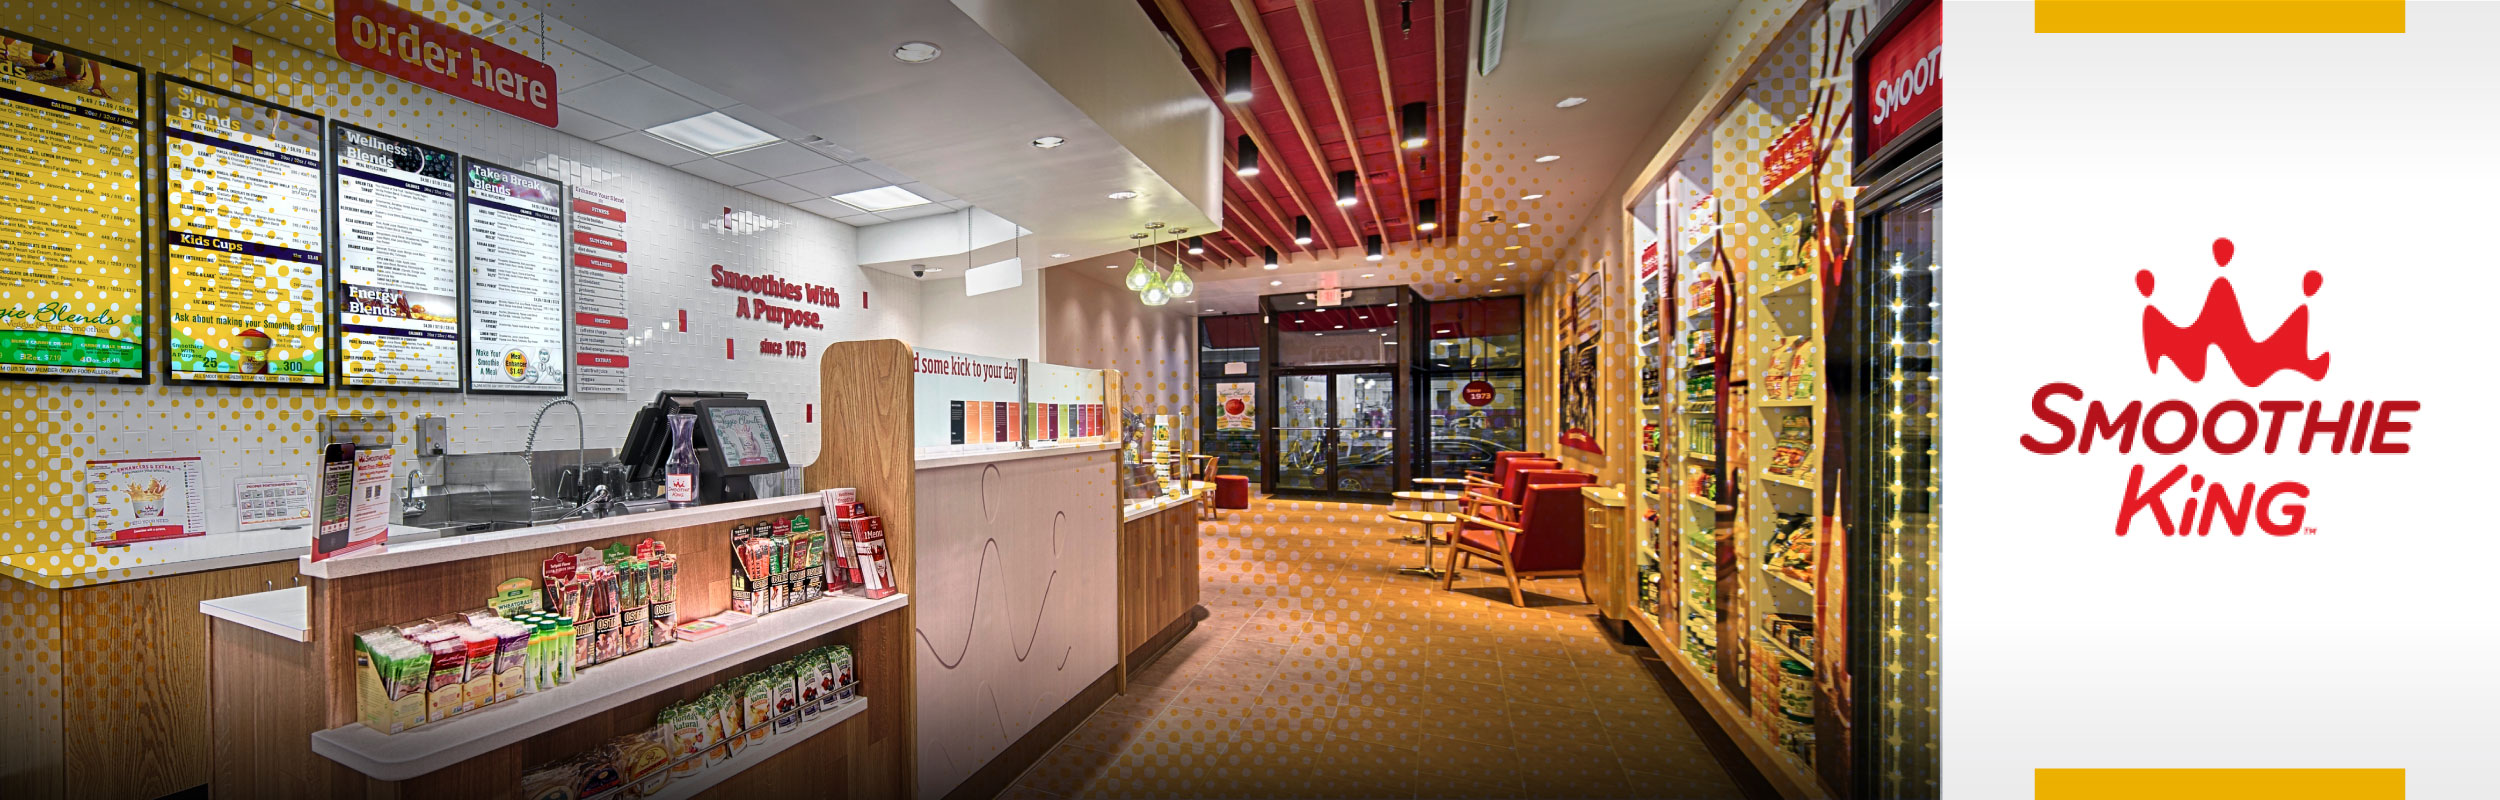 Smoothie King store interior